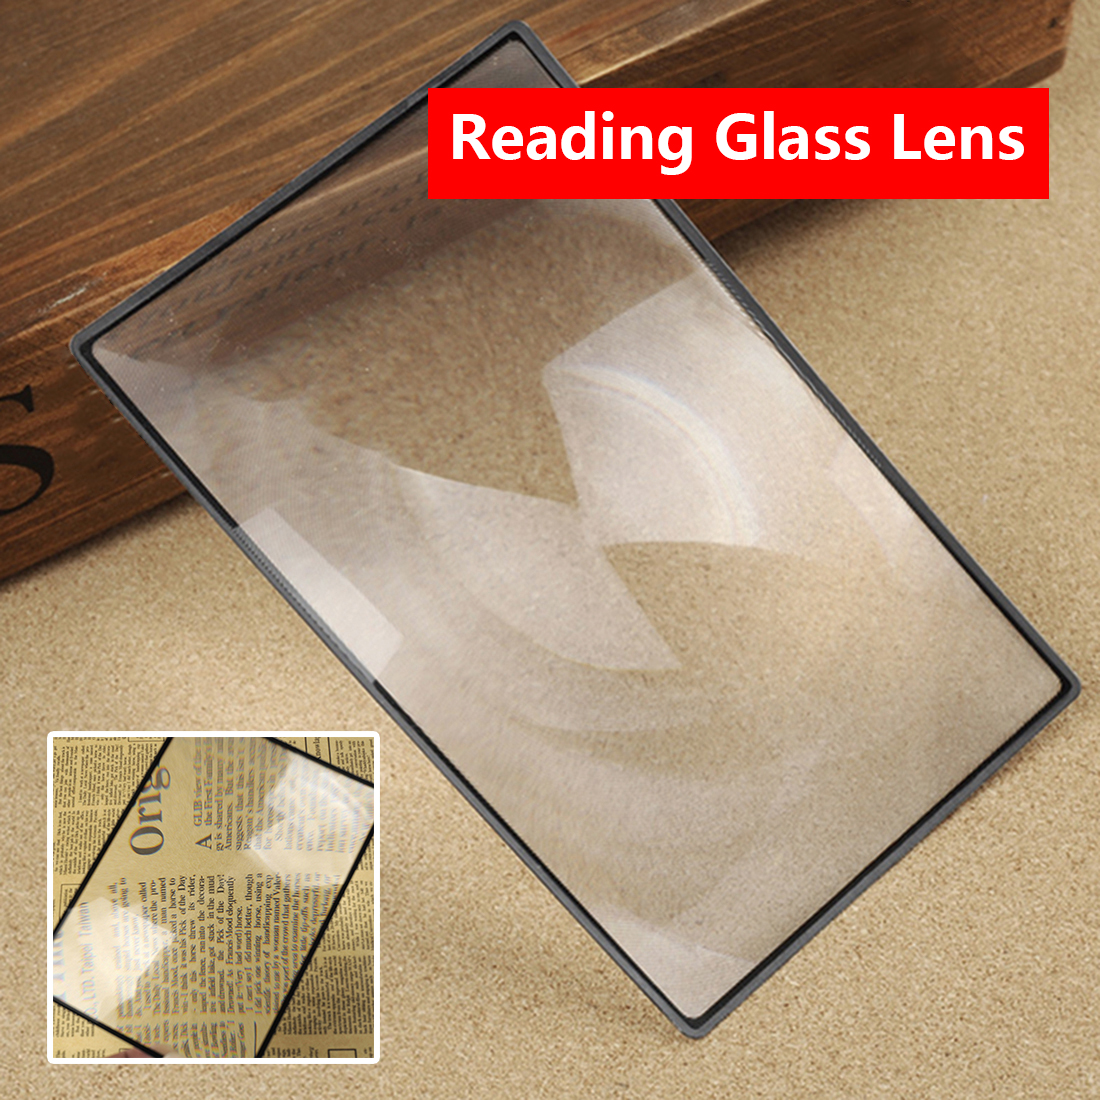 Magnifying Glass 1PC180X120mm A5 Flat PVC Magnifier Sheet X3 Book Page Magnification Magnifying Reading Glass Lens интуиция возможности и опасности